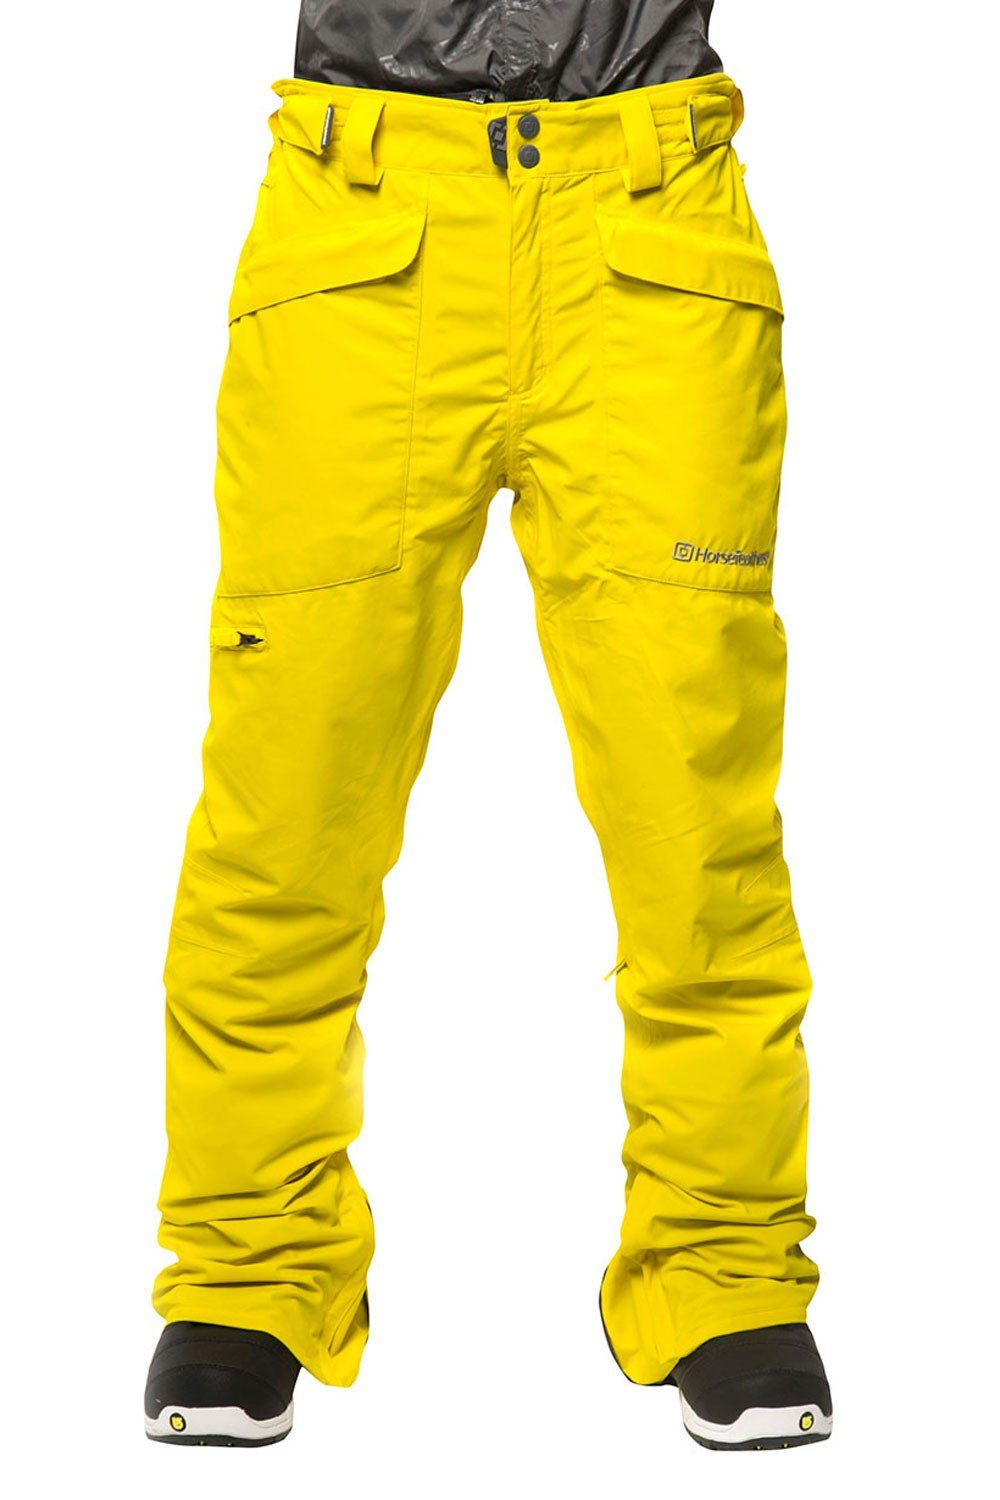 Horsefeathers Prior Girls Snowboardhose (yellow)